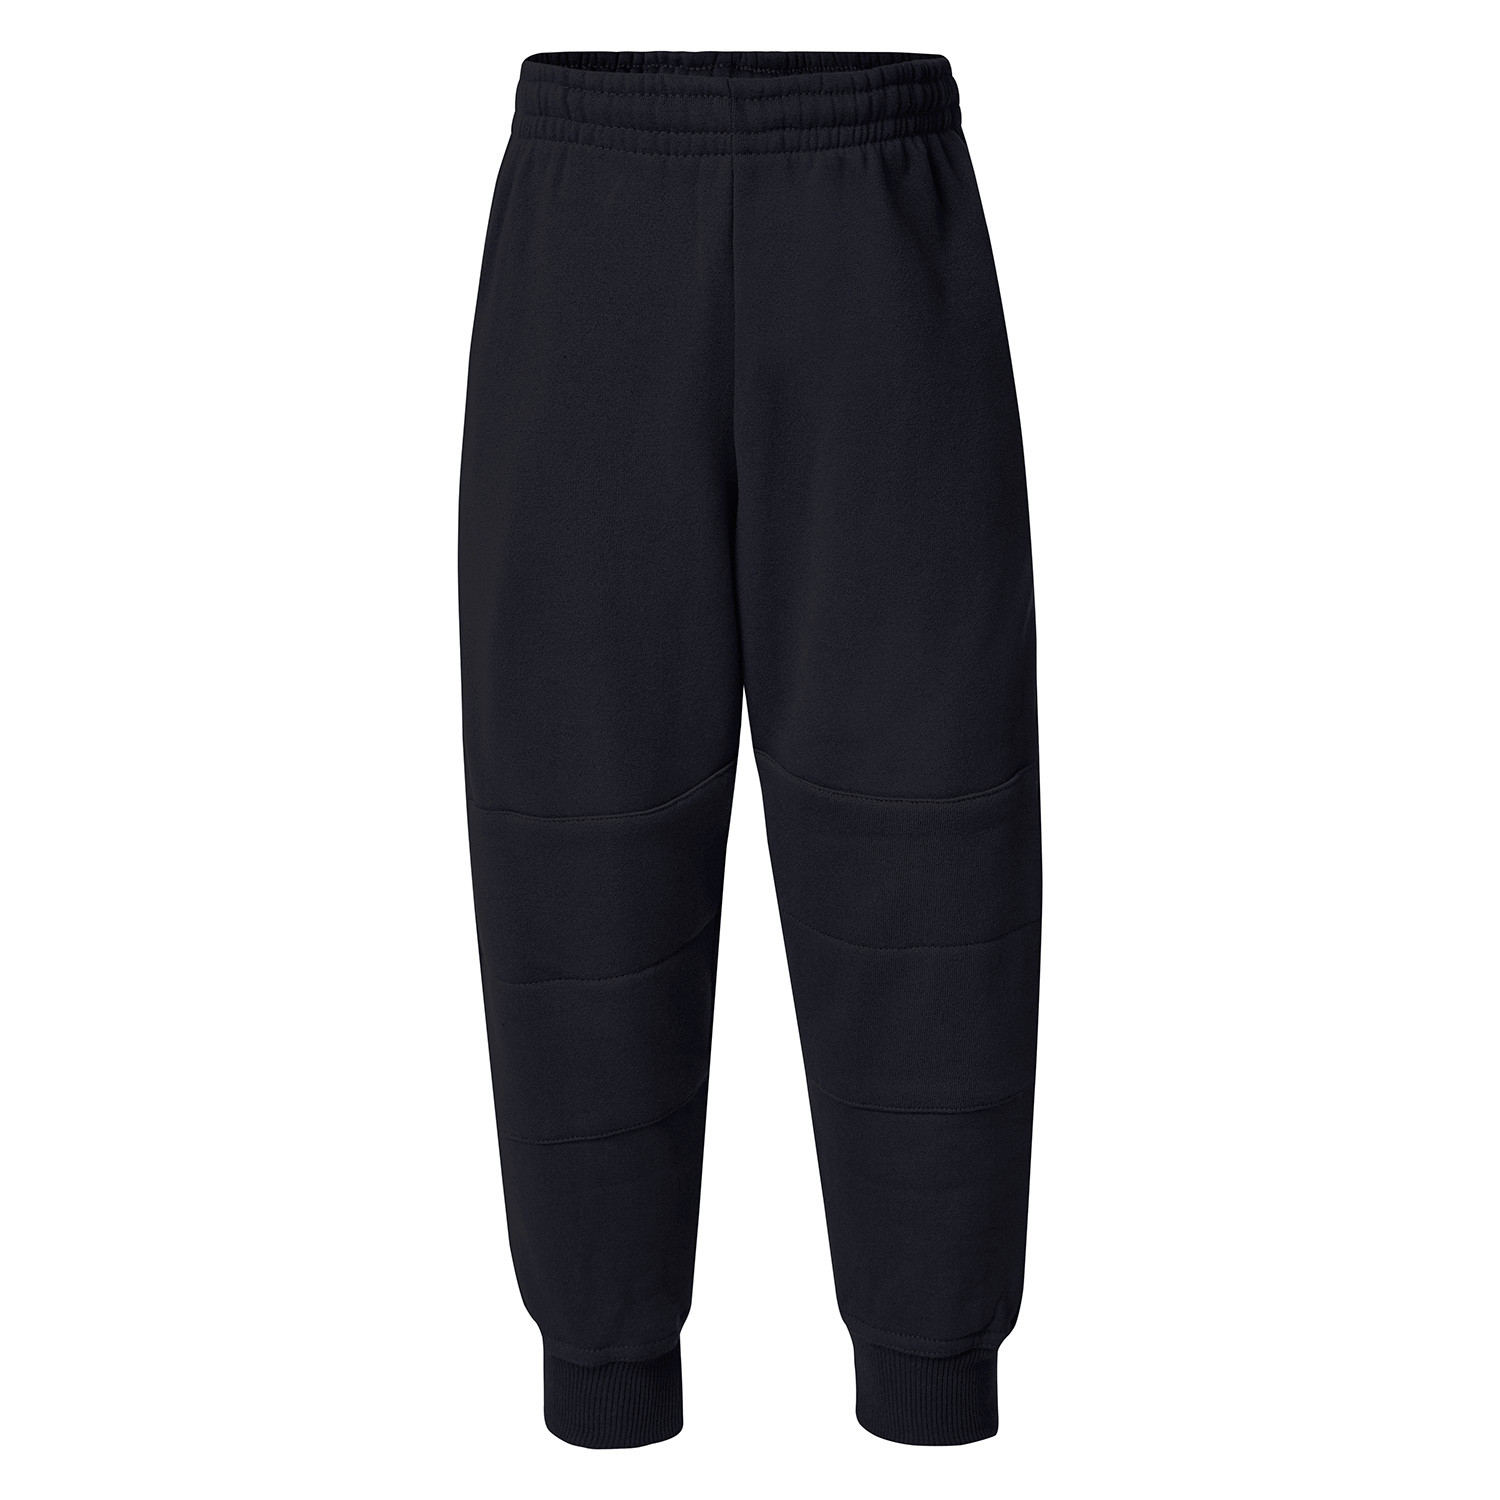 Wills Fleecy Double Knee Cuff Track Pants